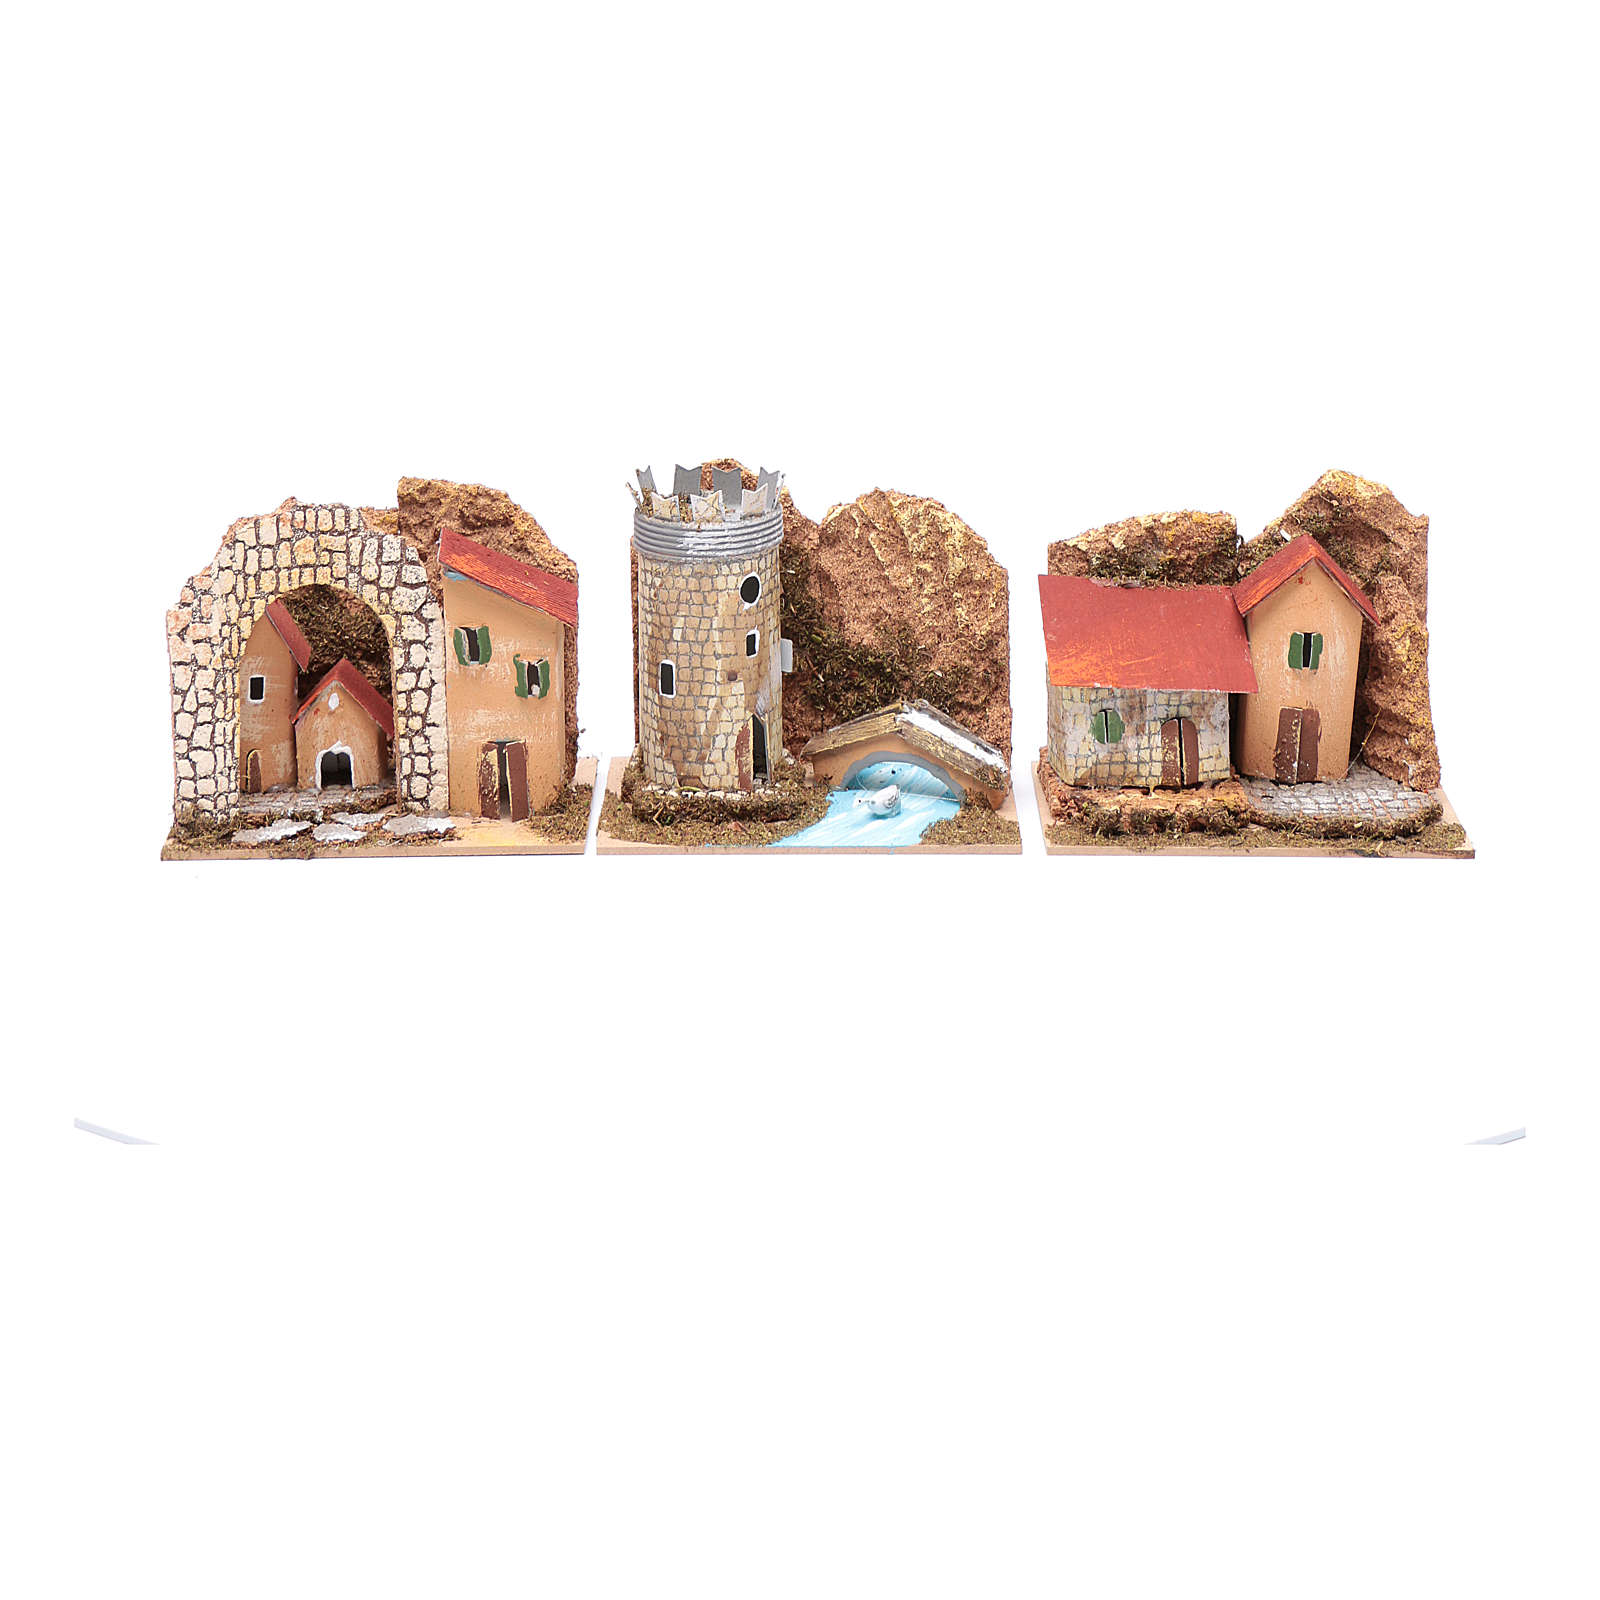 Group of little coloured houses - set of 6 pieces 15x10x10 cm 4